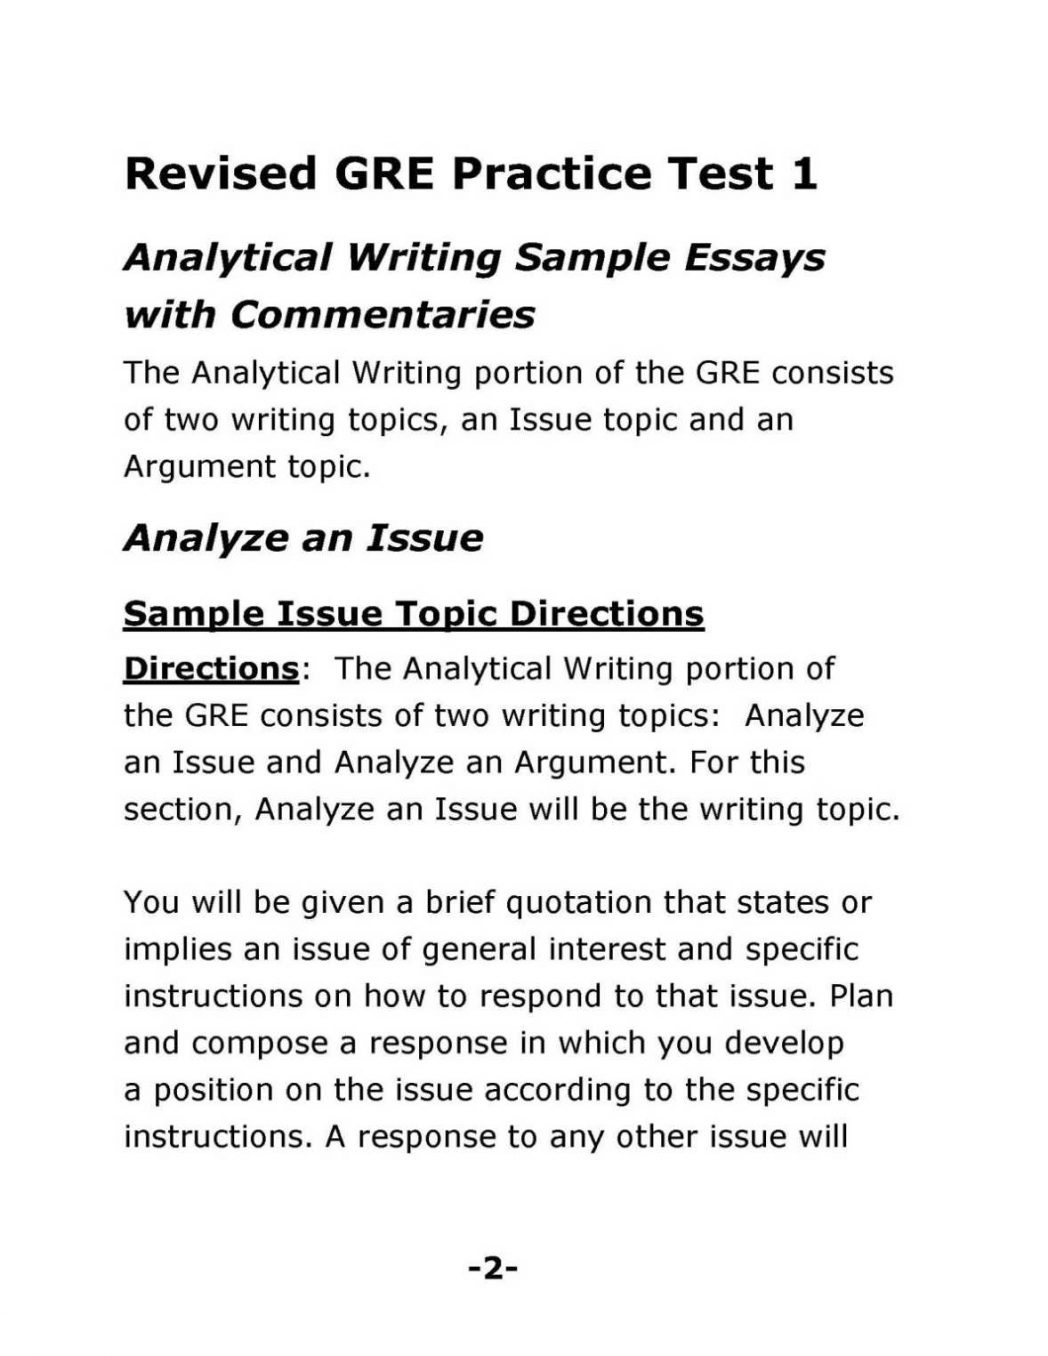 004 Gre Sample Essays Essay Example Issue Topics For Diversity Argumentative Writing Format Test Papers With Soluti Books Tips Preparation Pdf Practice Strategies Examples Formidable Awa Answers Prompts Full